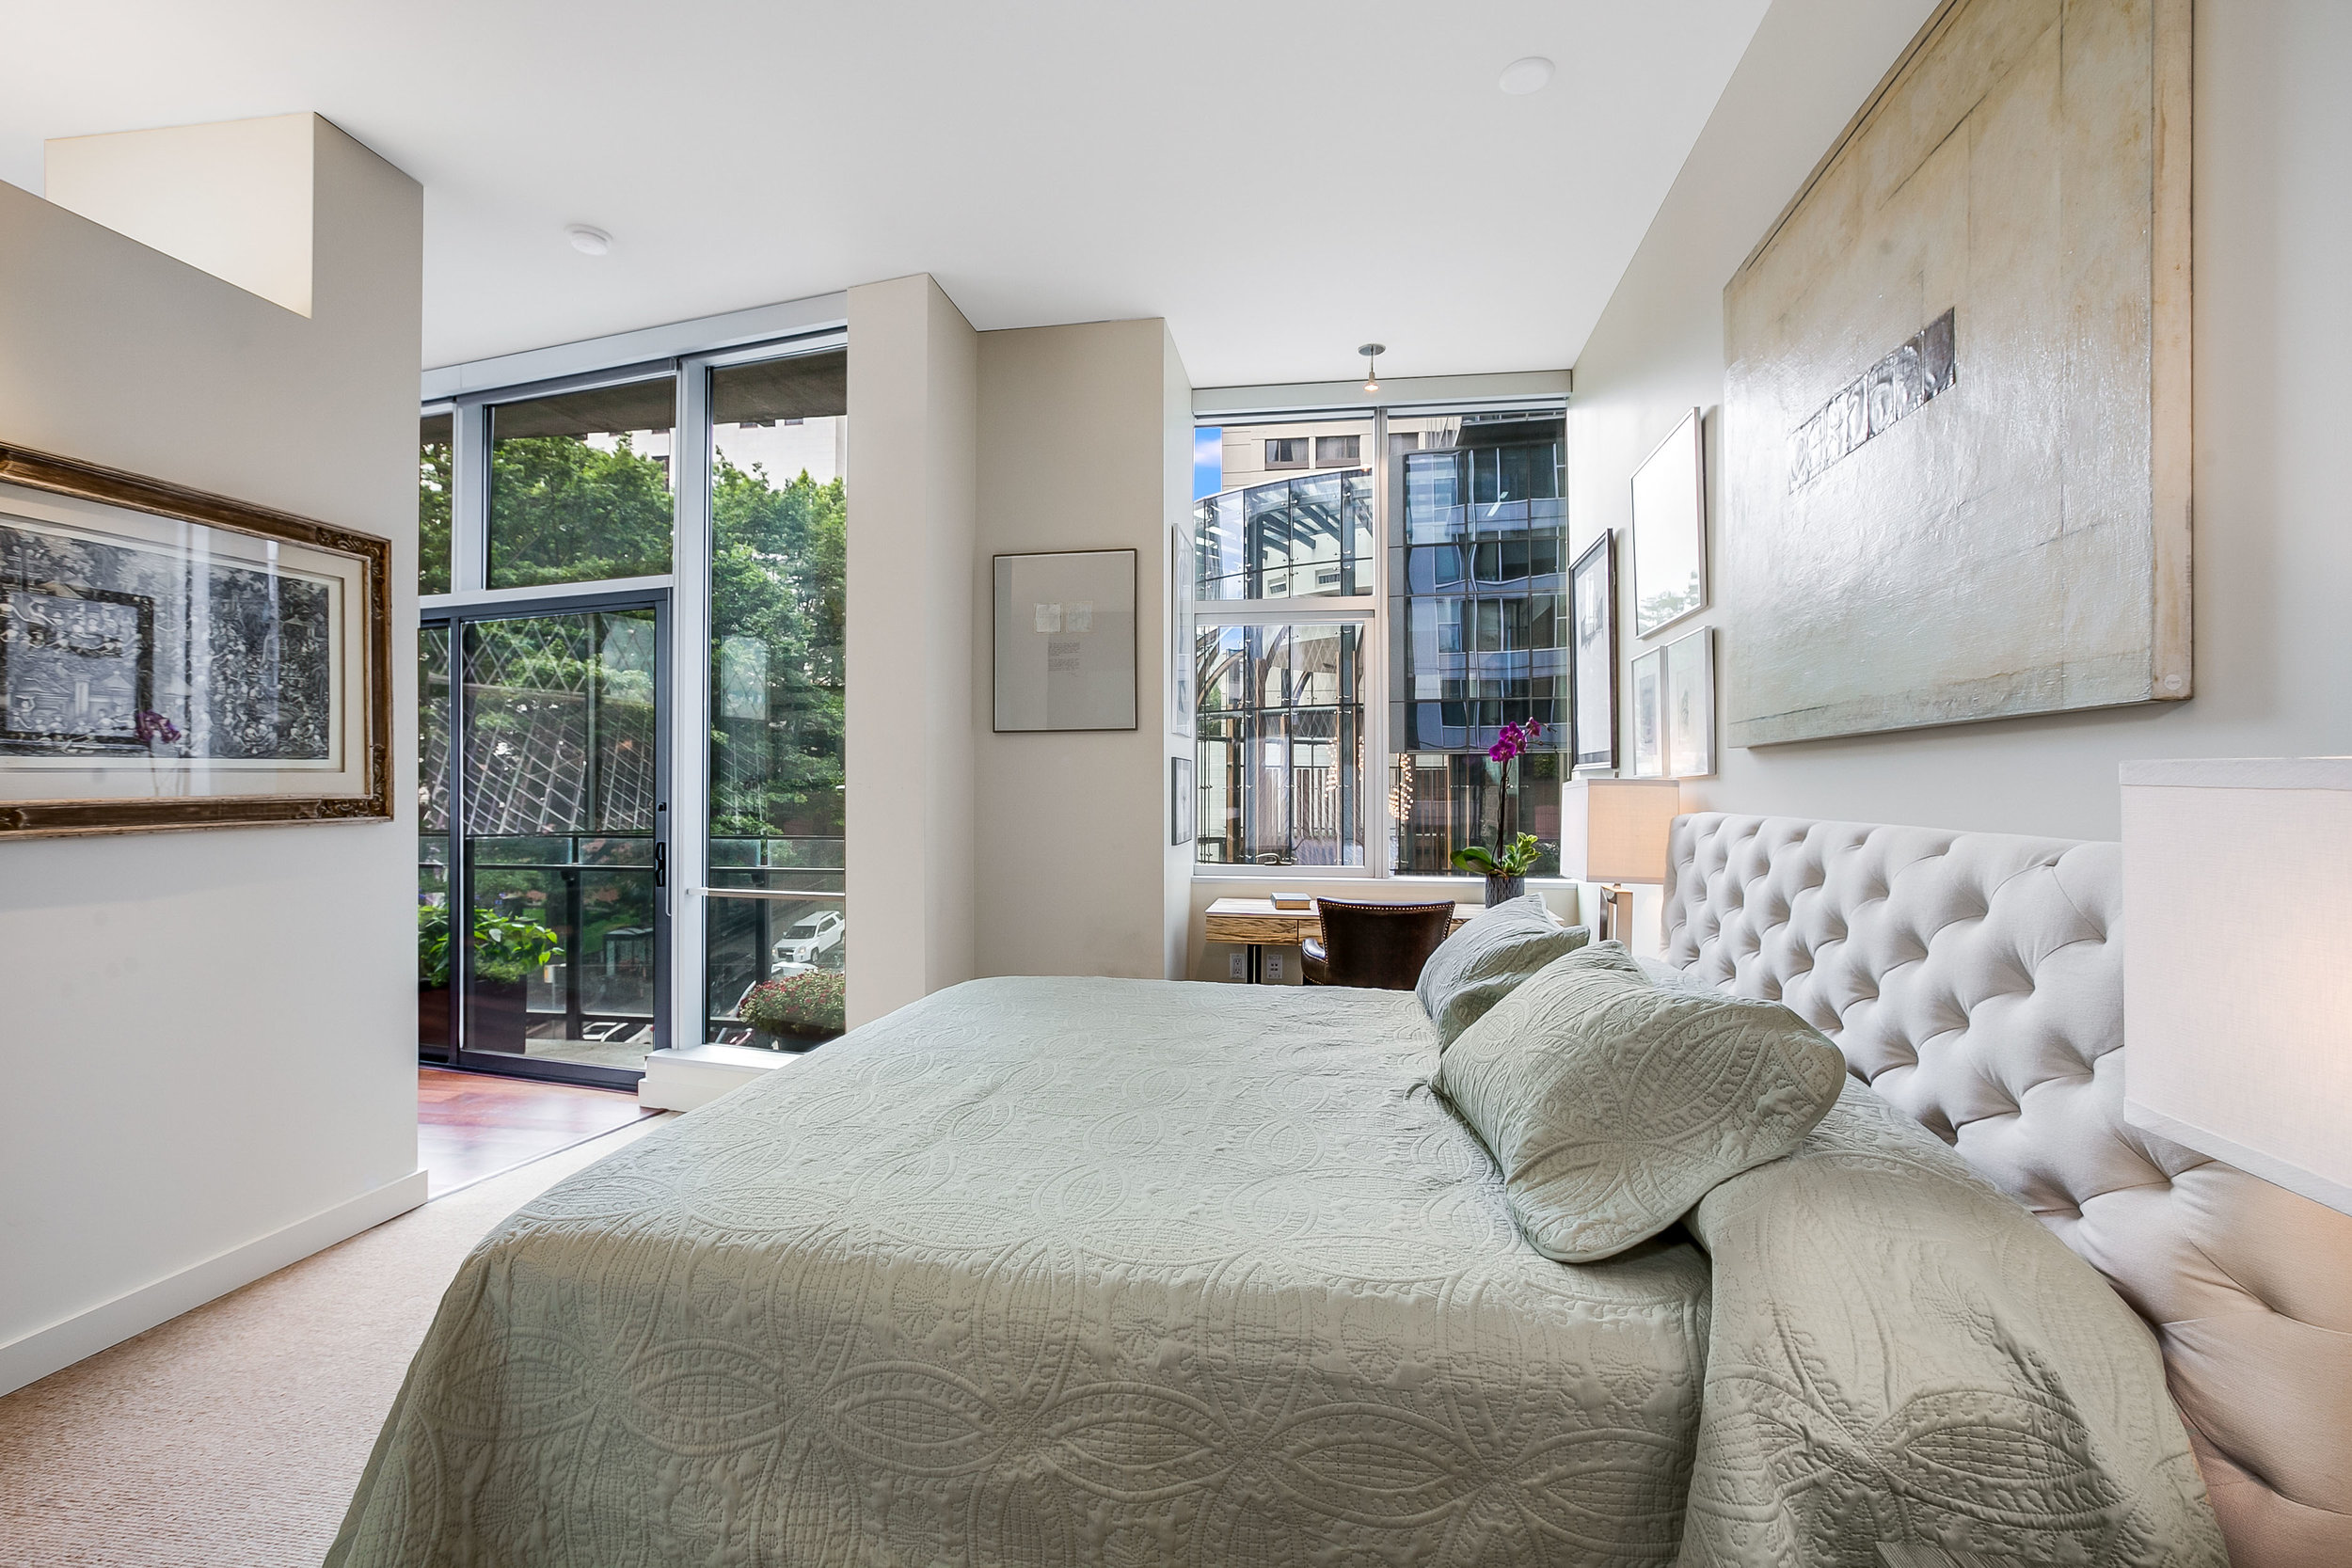 Calm Koolhaas Evenings - As the evening winds down, settle into the exquisite master suite, large enough for an office space with a walk-in closet. The entire space is curated for relaxation and rejuvination.